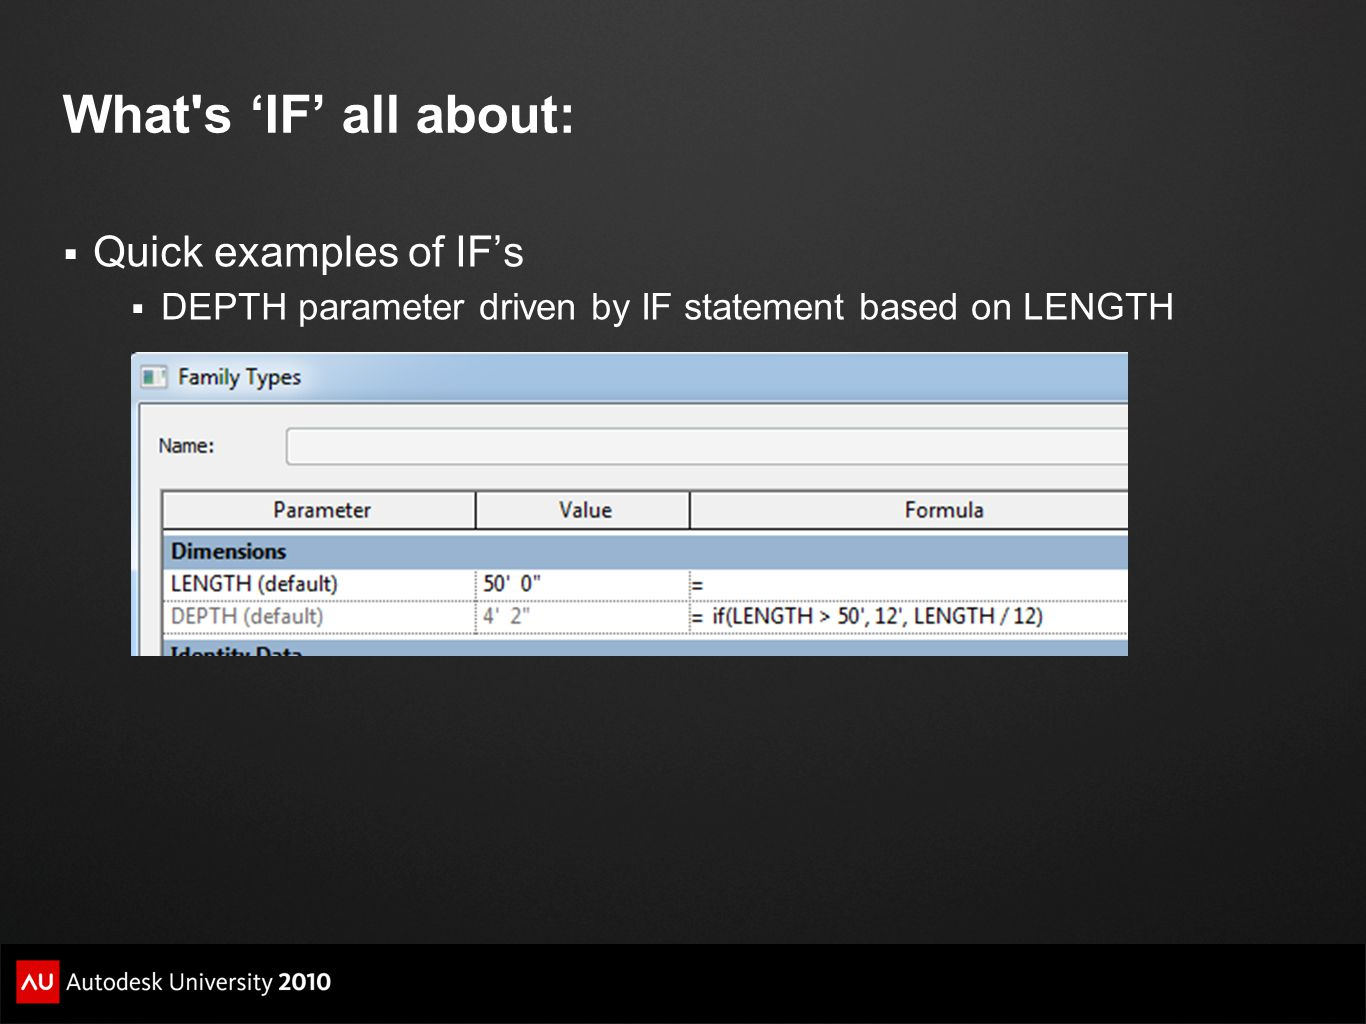  Quick examples of IF's  DEPTH parameter driven by IF statement based on LENGTH